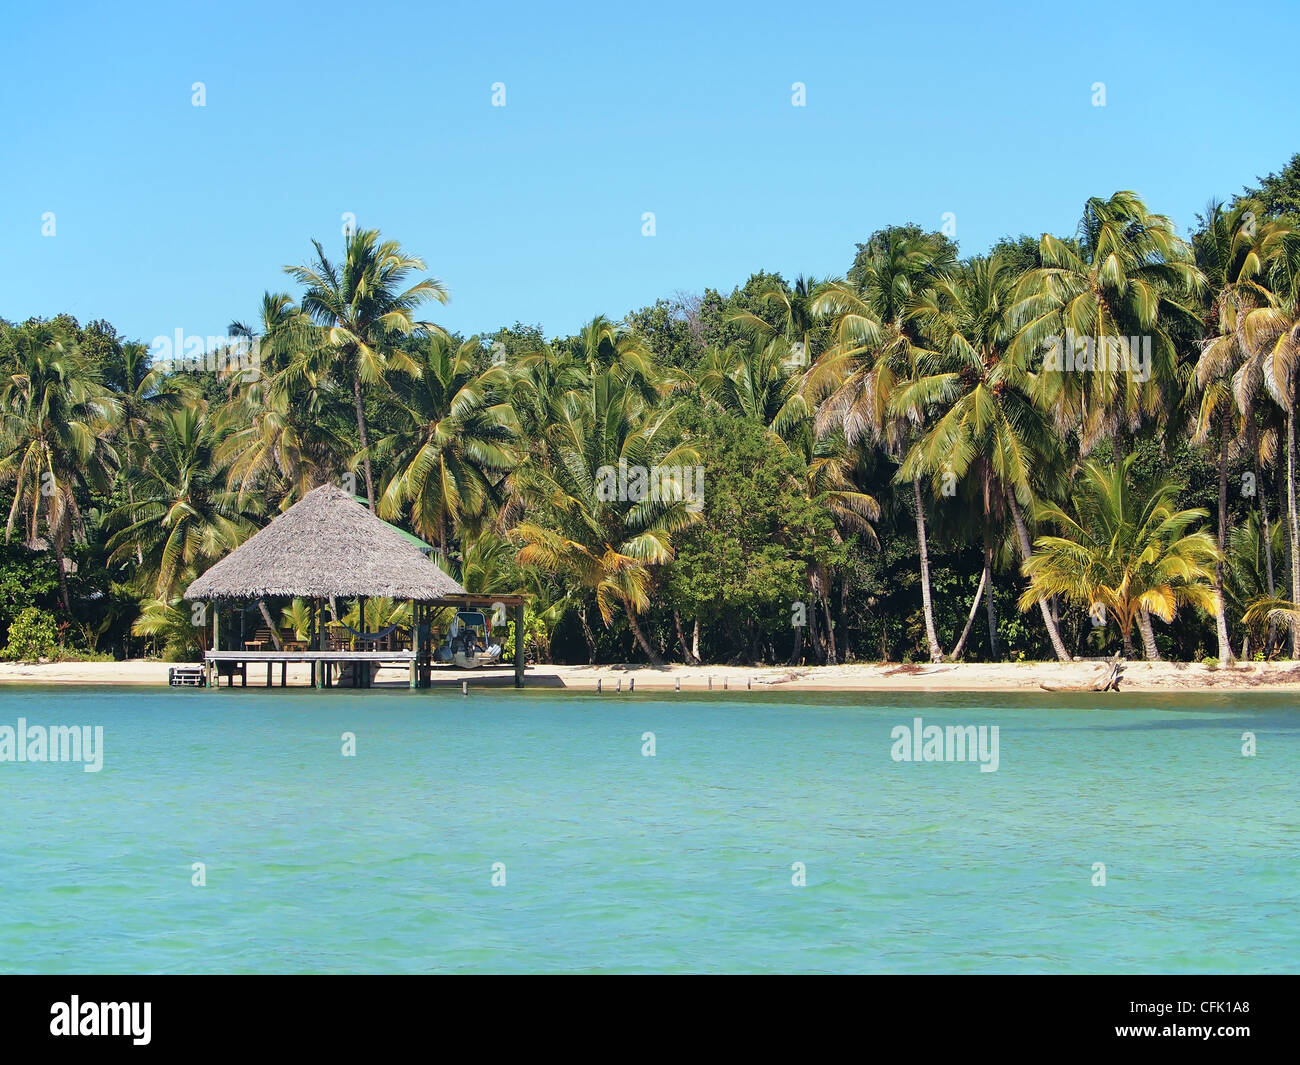 Tropical beach with thatched roof hut, Central America, Panama - Stock Image